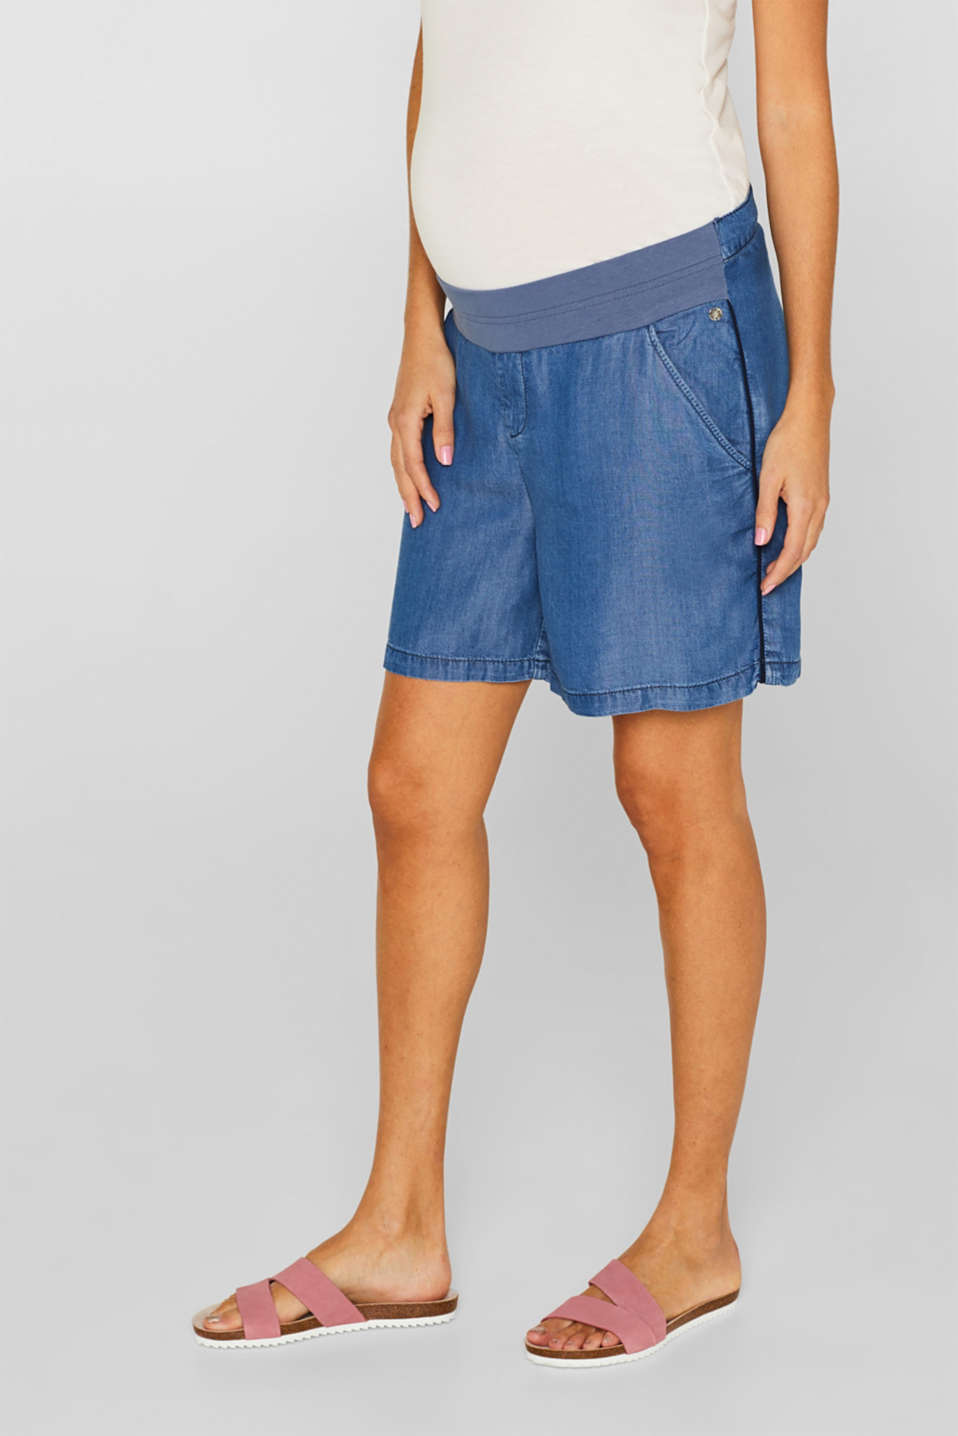 Denim-effect shorts, 100% lyocell, LCLIGHT BLUE, detail image number 7